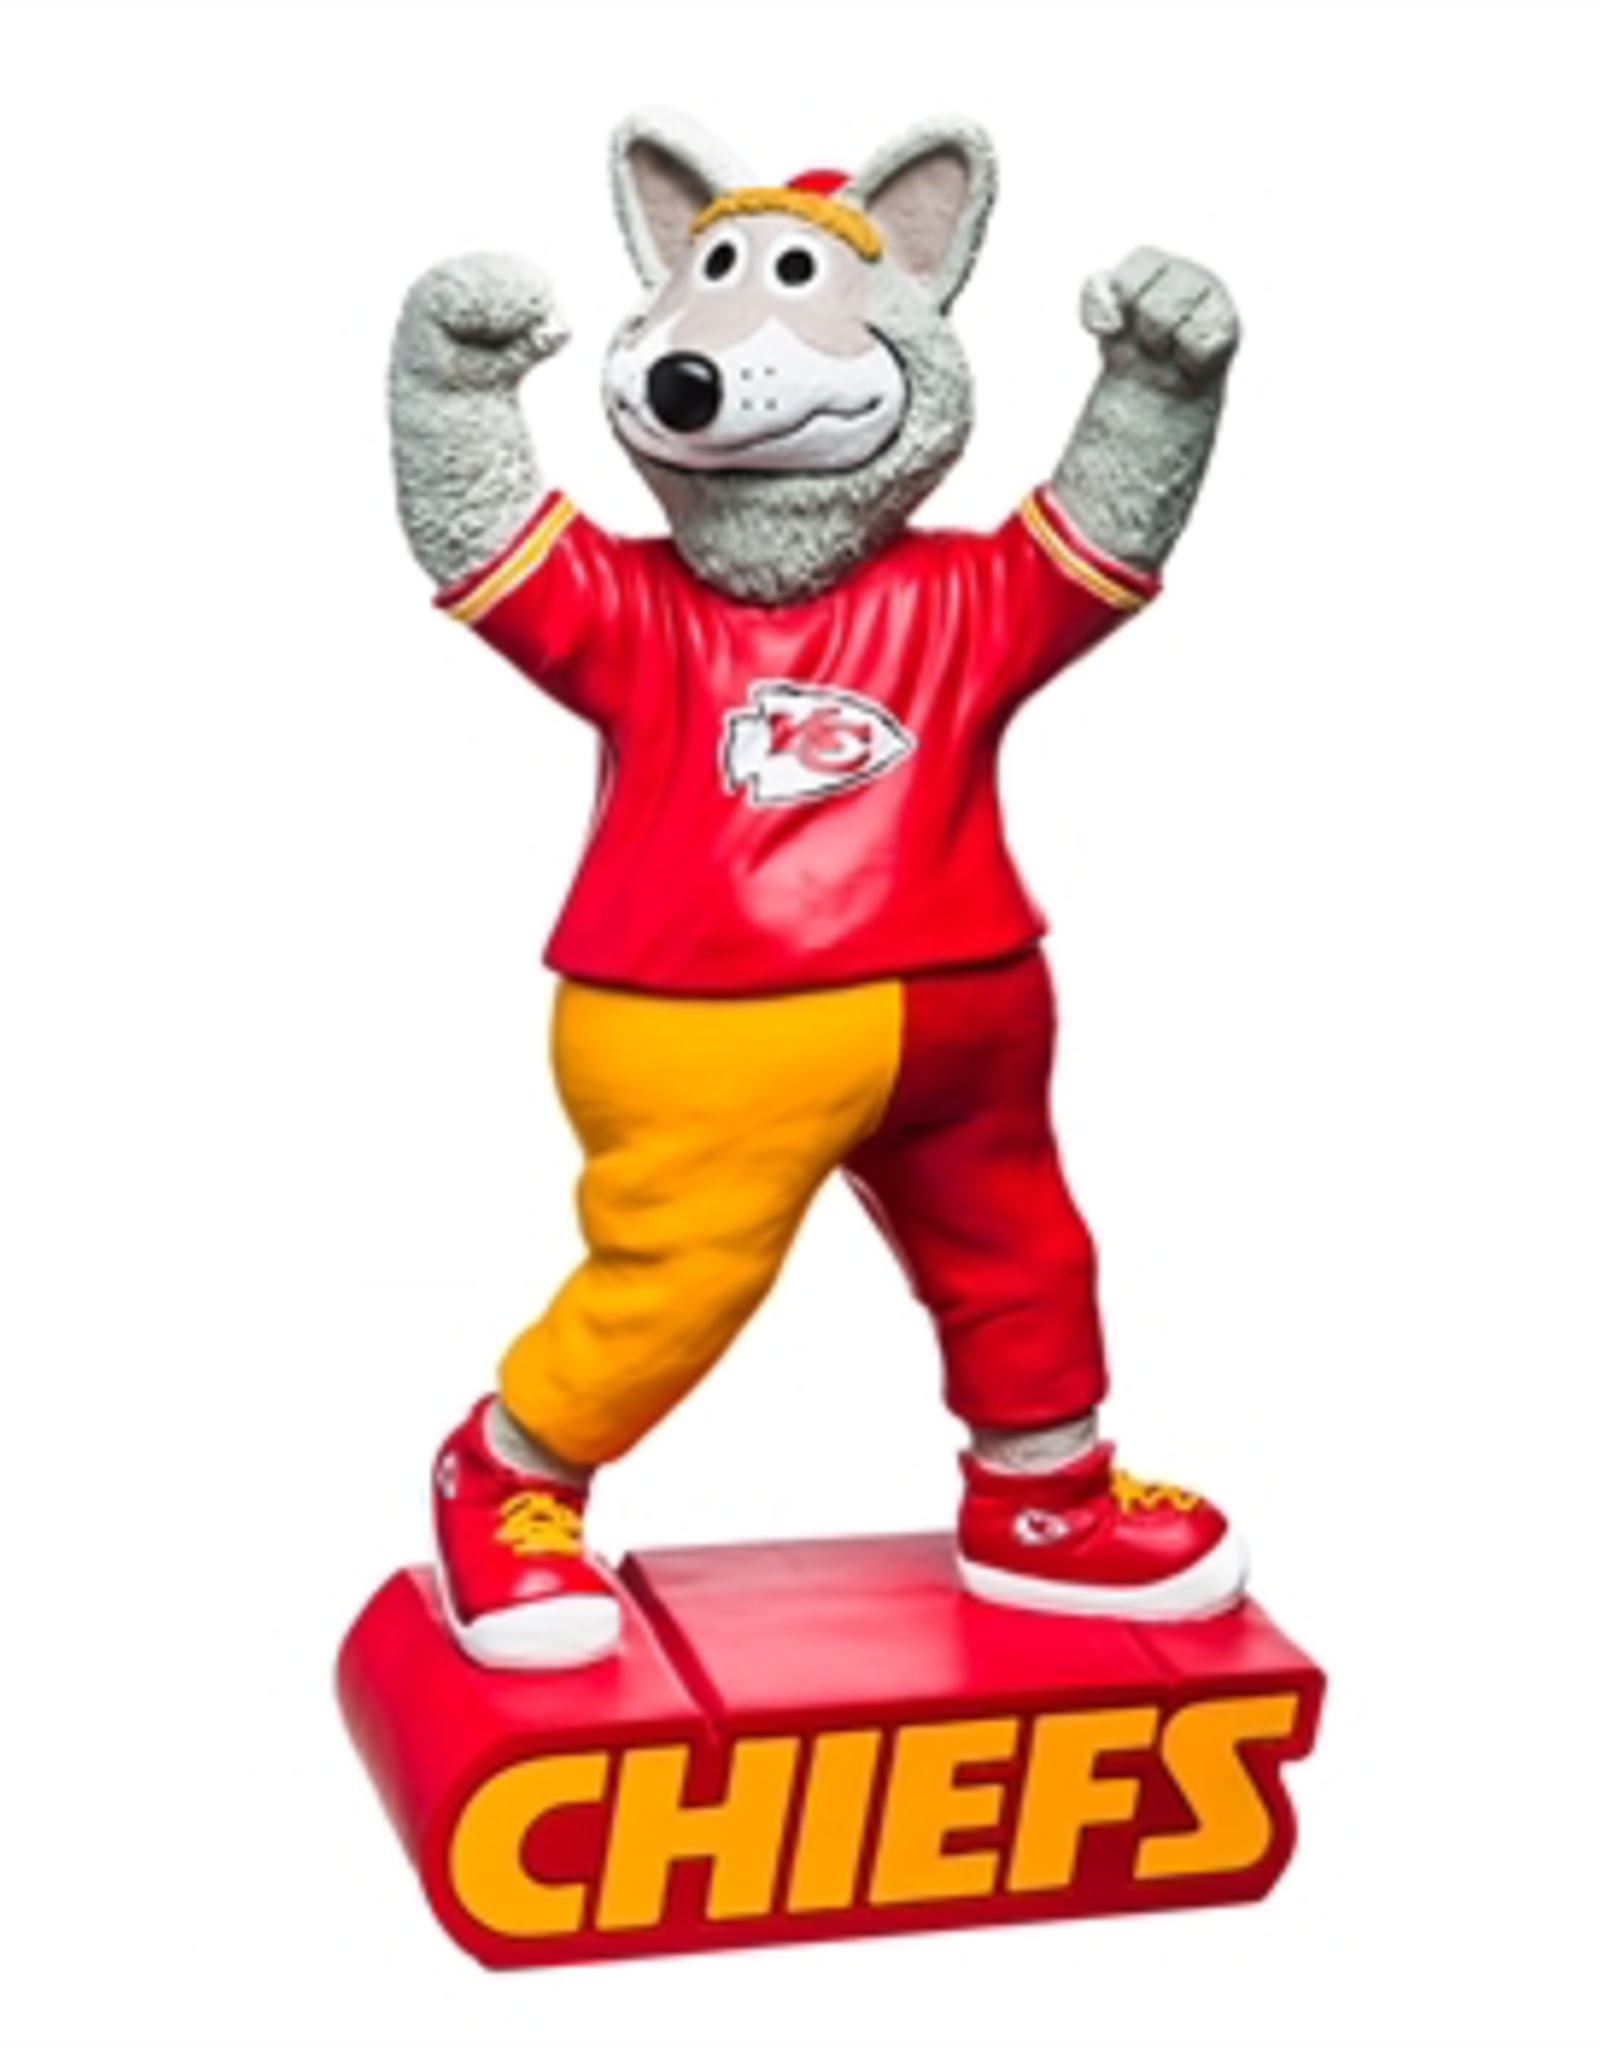 EVERGREEN Kansas City Chiefs Mascot Statue